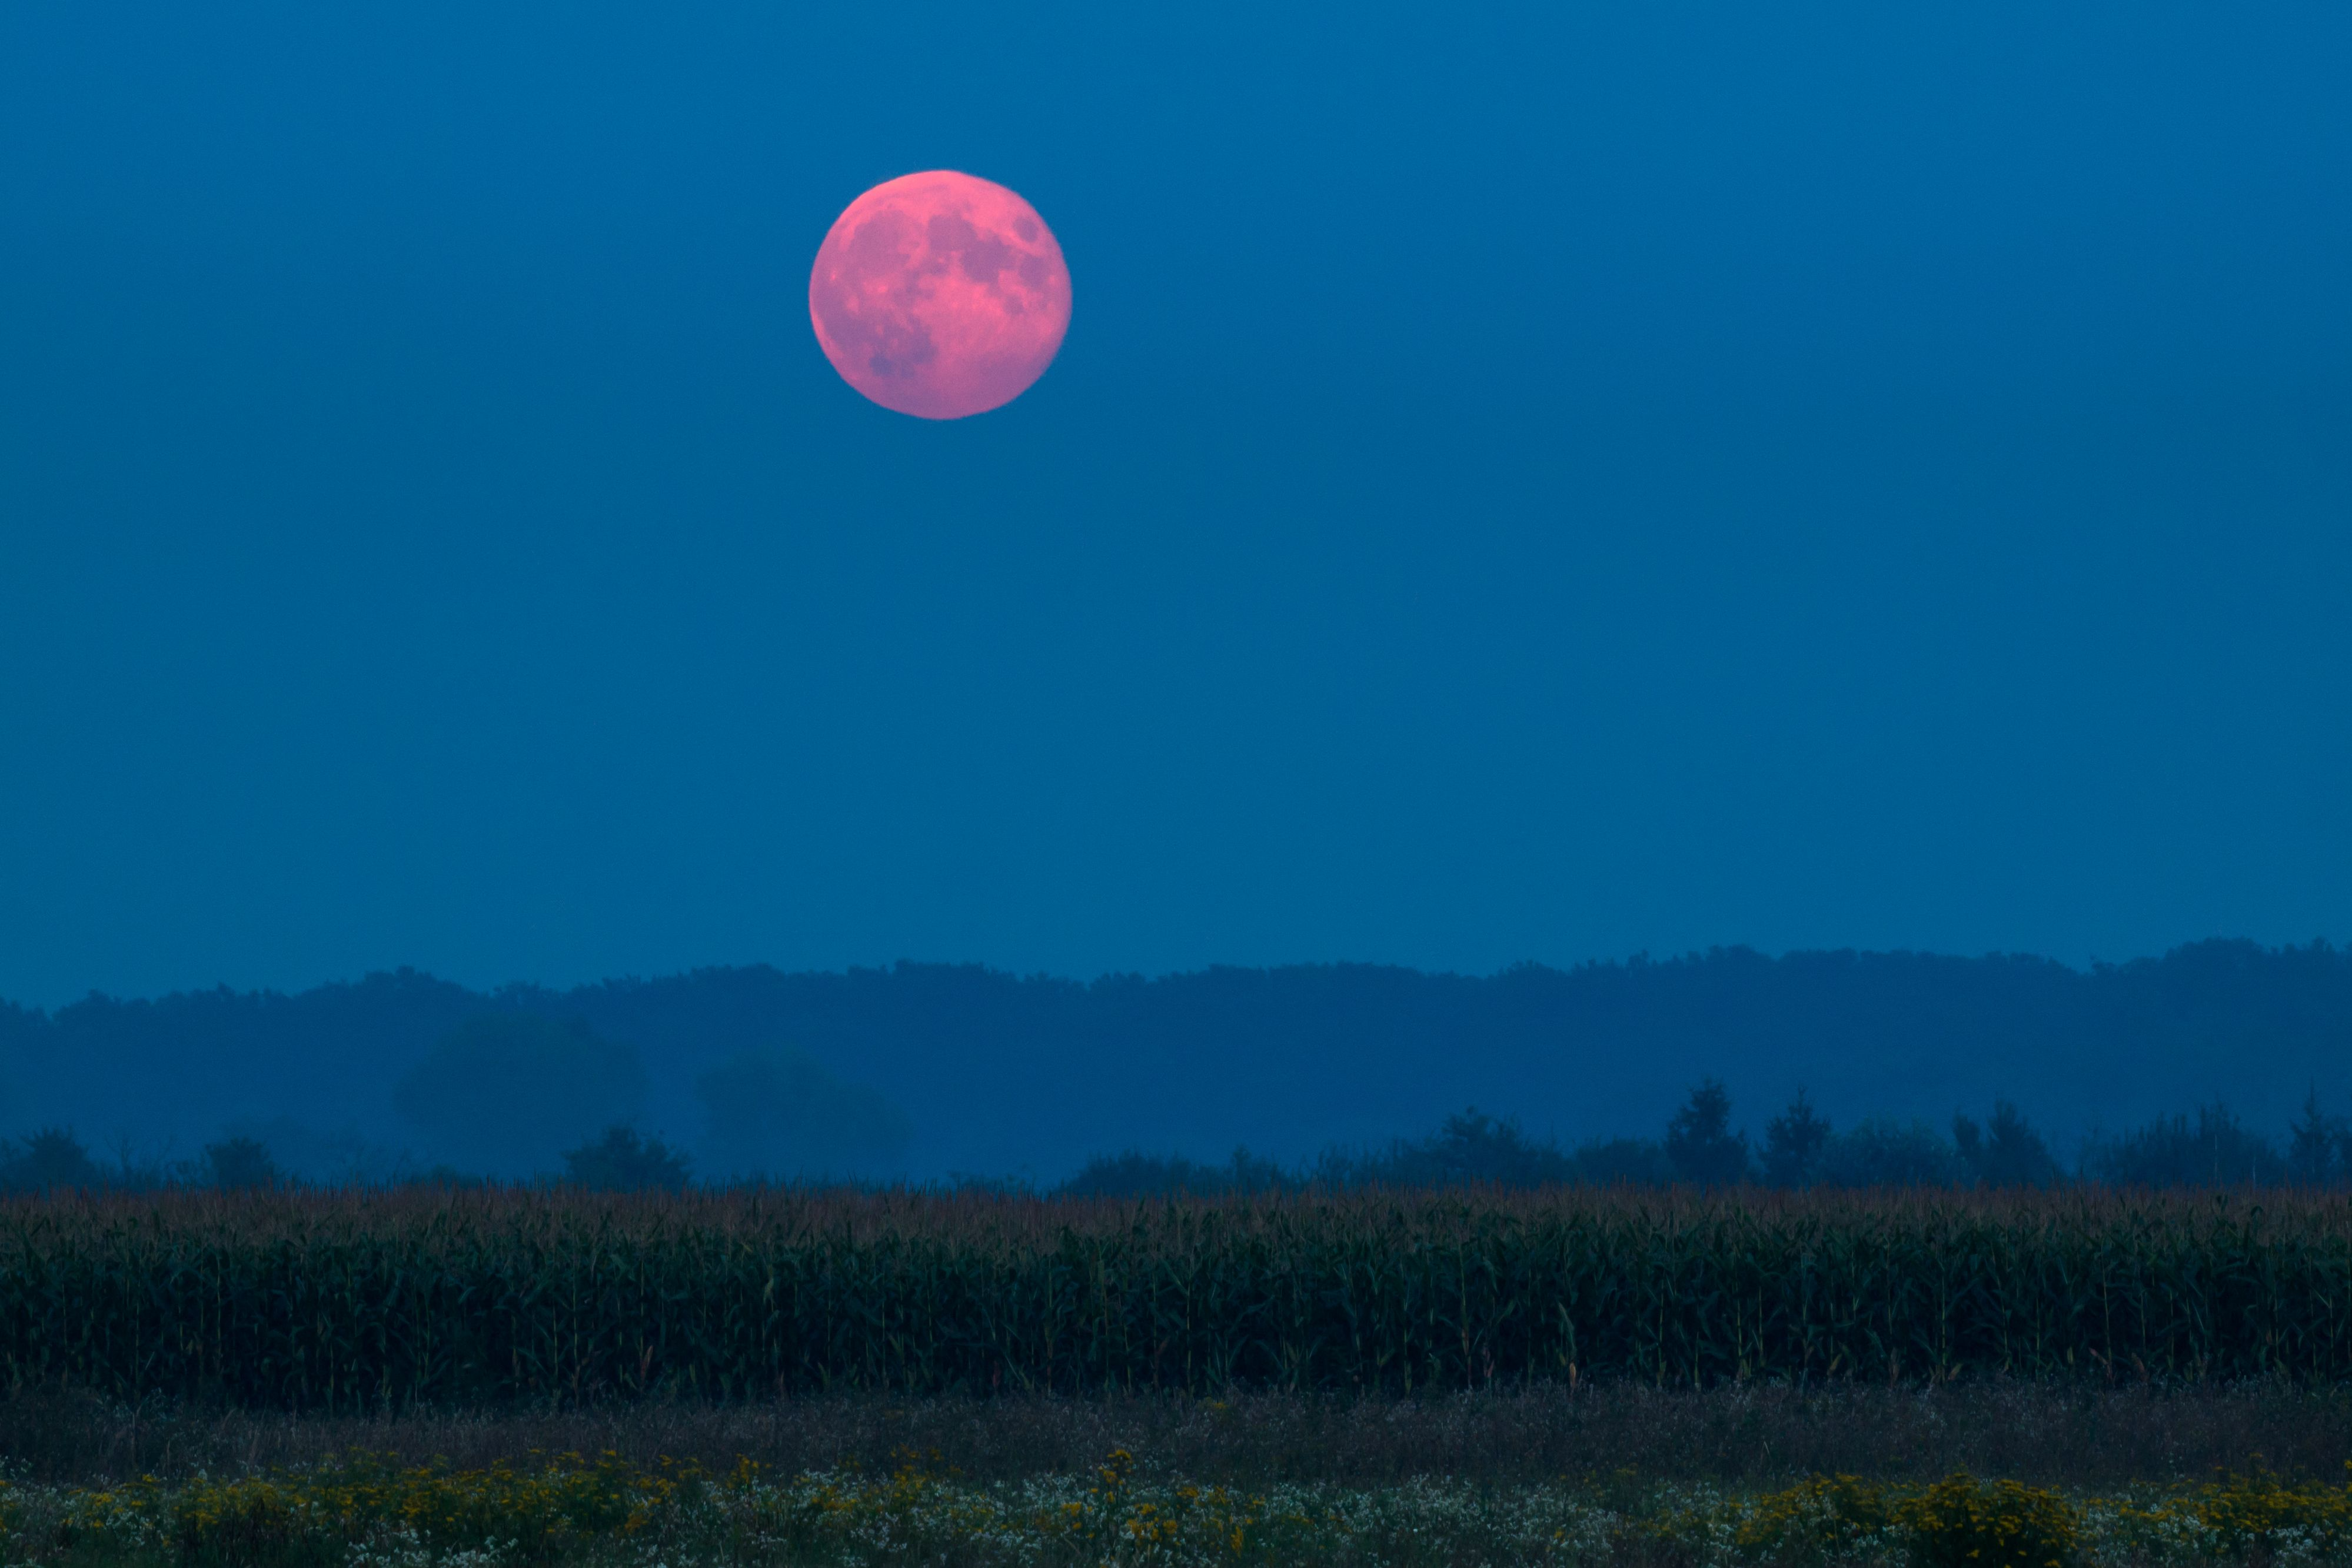 Harvest Moon: When to see the September 2019 full moon